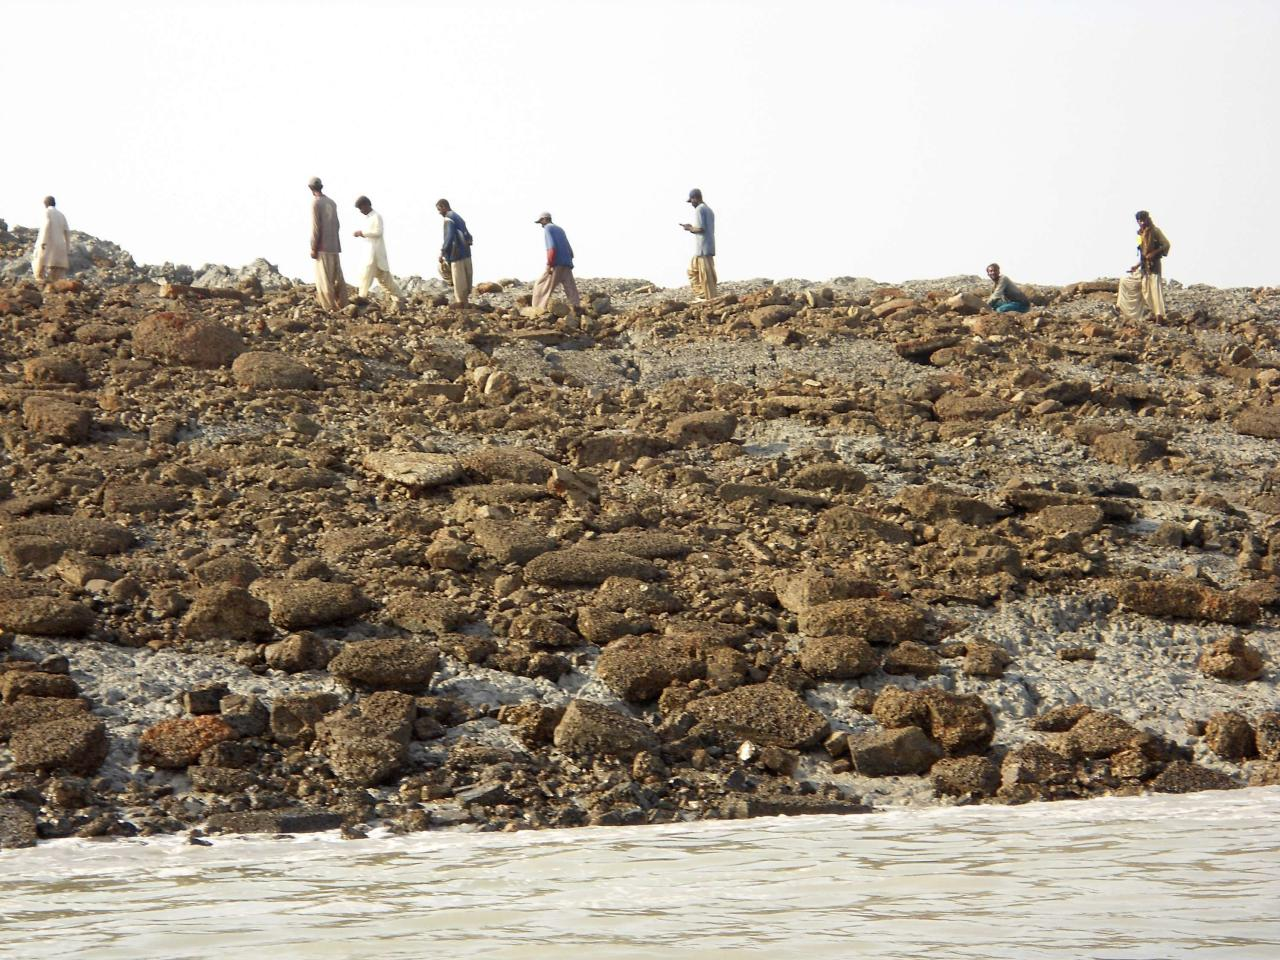 People walk on an island that rose from the sea following an earthquake, off Pakistan's Gwadar coastline in the Arabian Sea September 25, 2013. A major earthquake hit a remote part of western Pakistan on Tuesday, killing at least 45 people and prompting the new island to rise from the sea just off the country's southern coast. The earthquake was so powerful that it caused the seabed to rise and create a small, mountain-like island about 600 meters off Pakistan's Gwadar coastline. Television channels showed images of a stretch of rocky terrain rising above the sea level, with a crowd of bewildered people gathering on the shore to witness the rare phenomenon. REUTERS/Stringer (PAKISTAN - Tags: ENVIRONMENT DISASTER TPX IMAGES OF THE DAY)